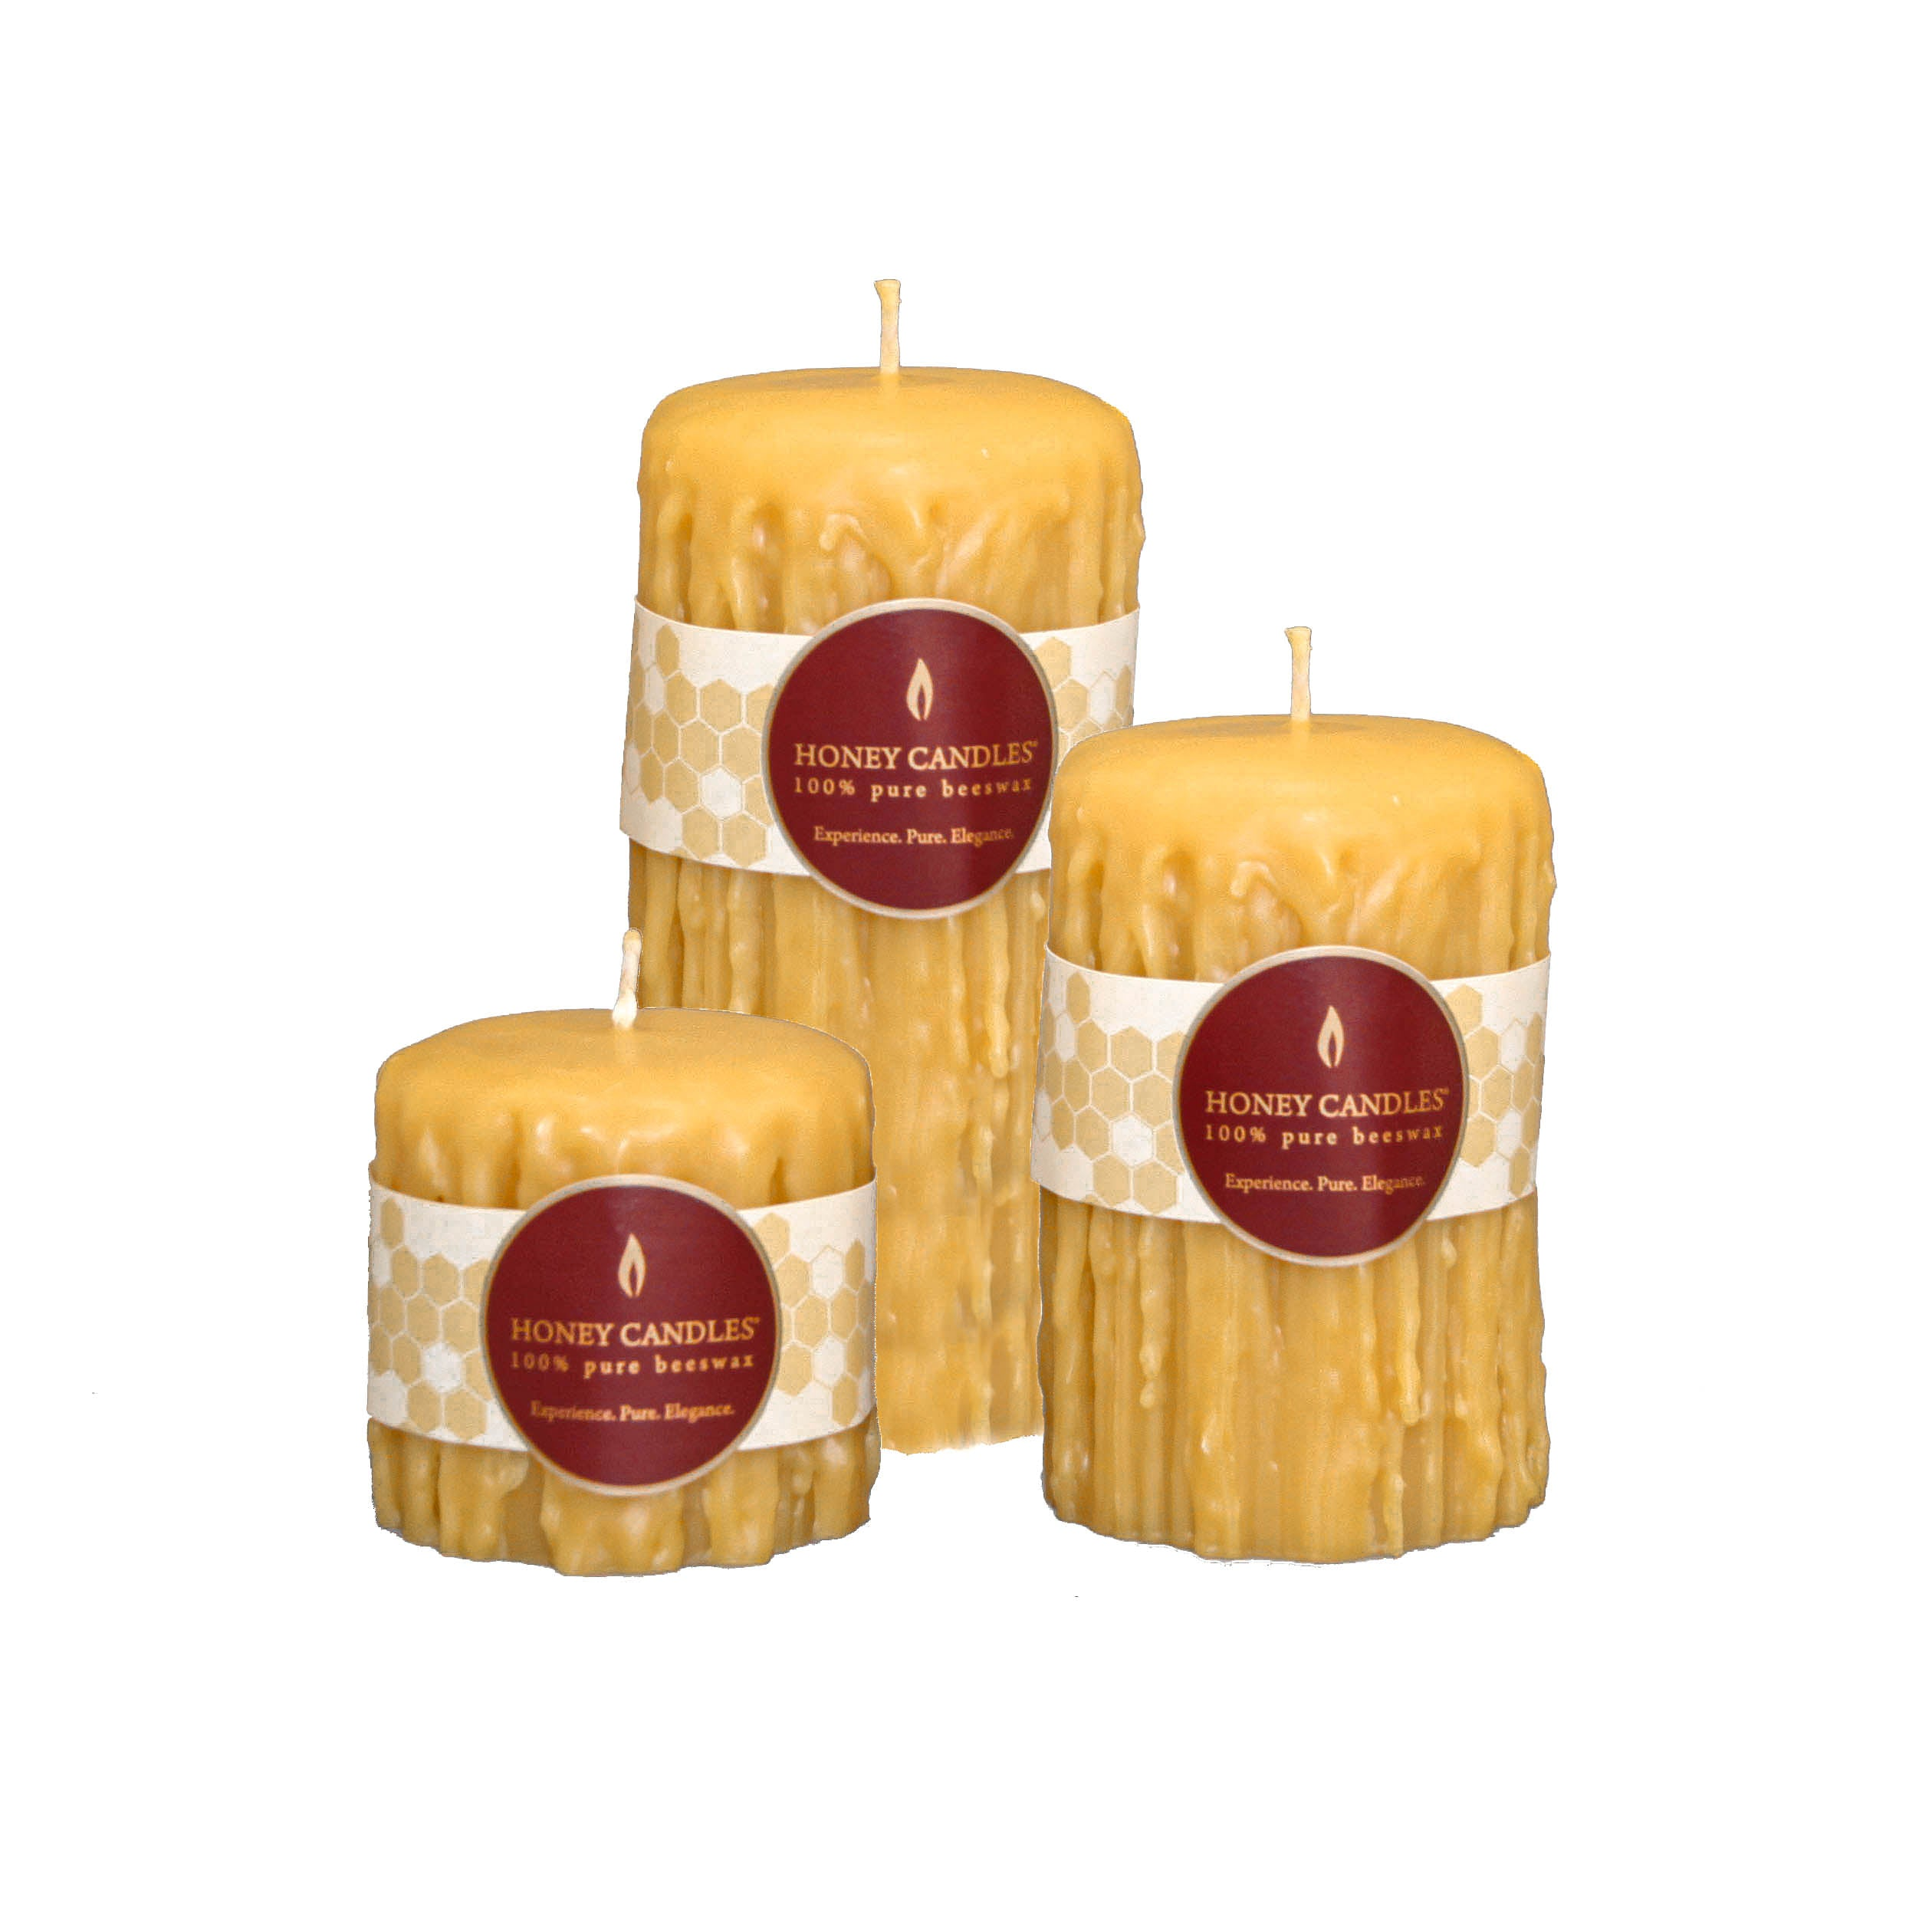 3 unique heritage dipped round pillar candles in beautiful honey color